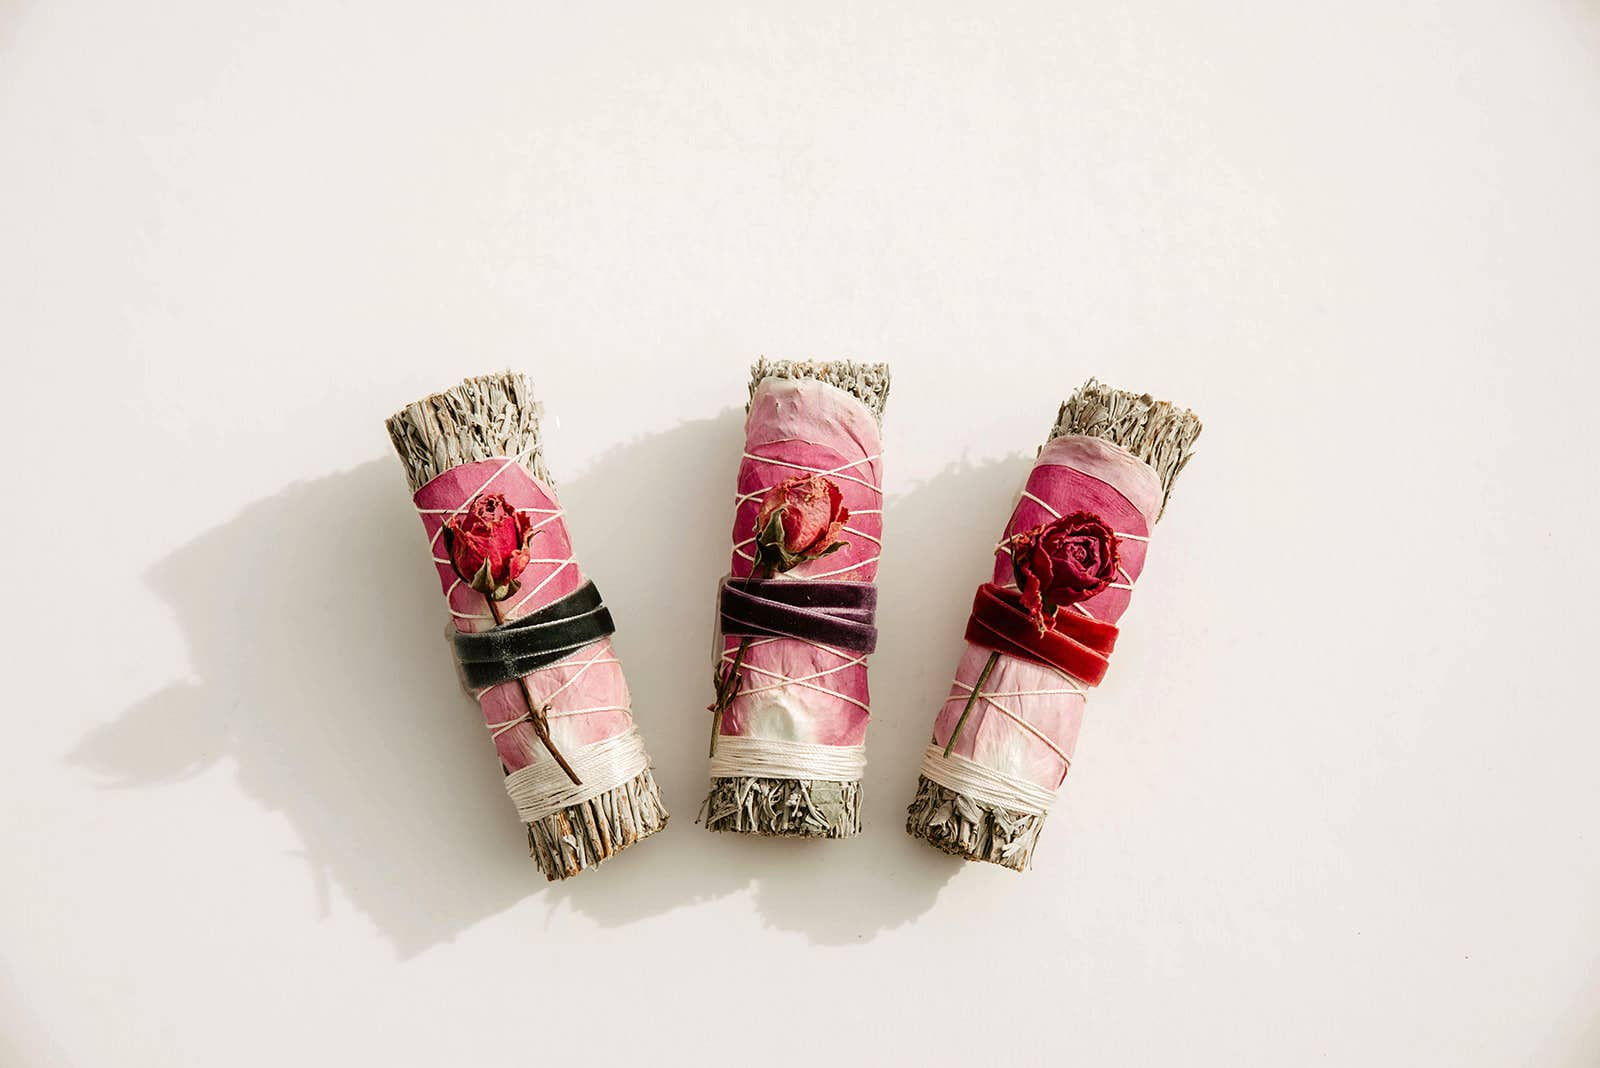 sage and dried rose petals smudge stick